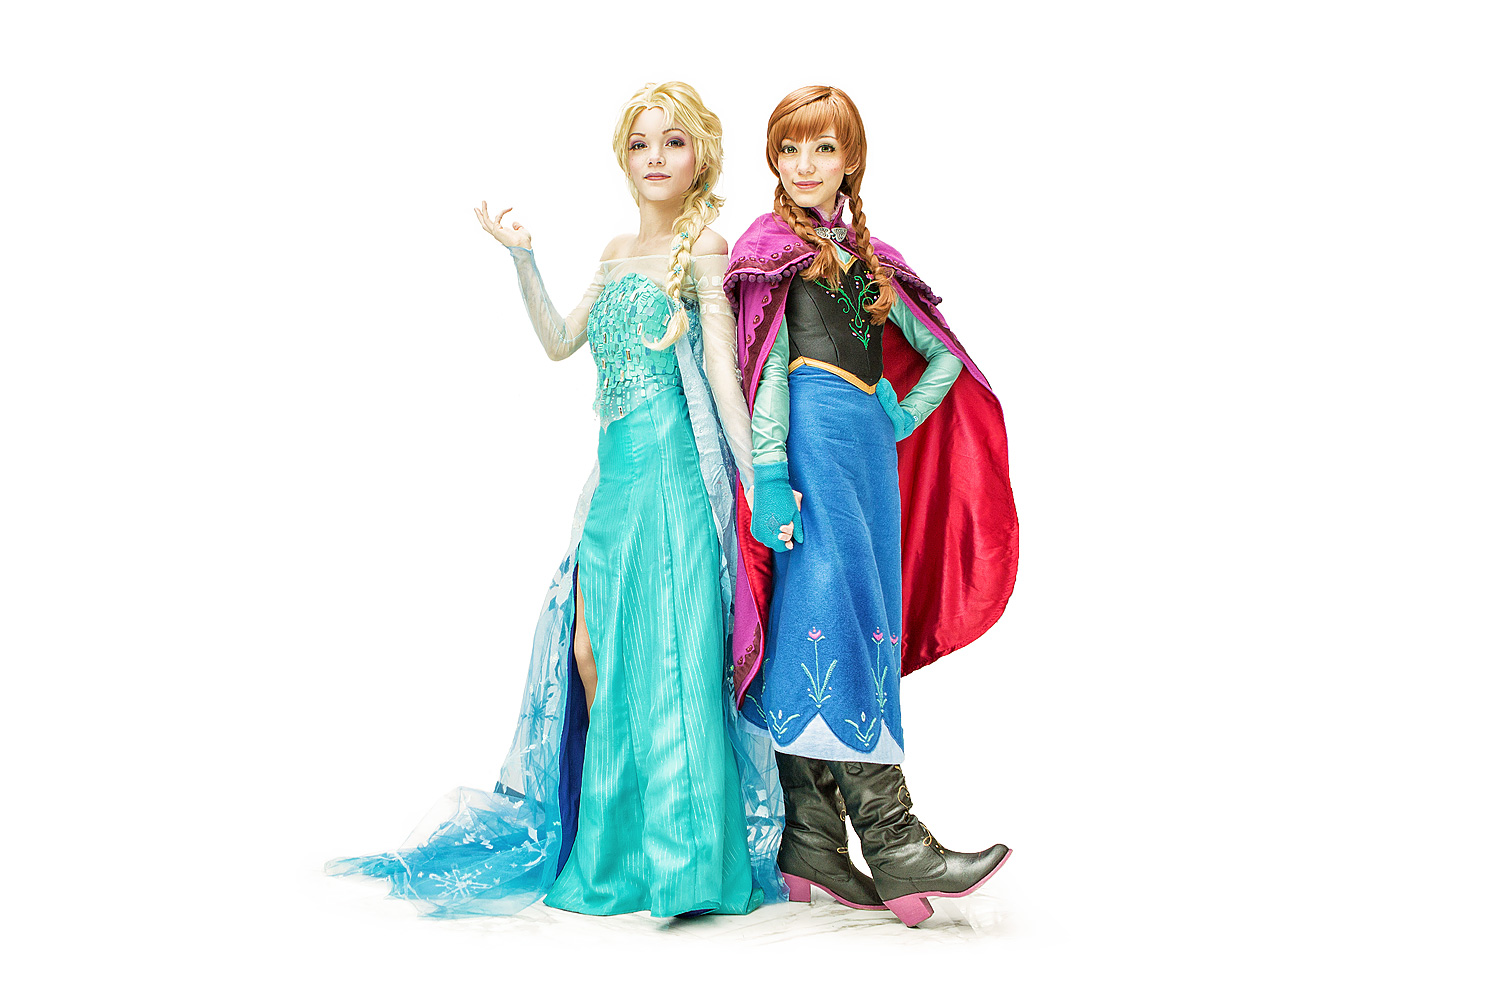 Yuurisans Cosplay as Elsa and Anna of Disney's Frozen